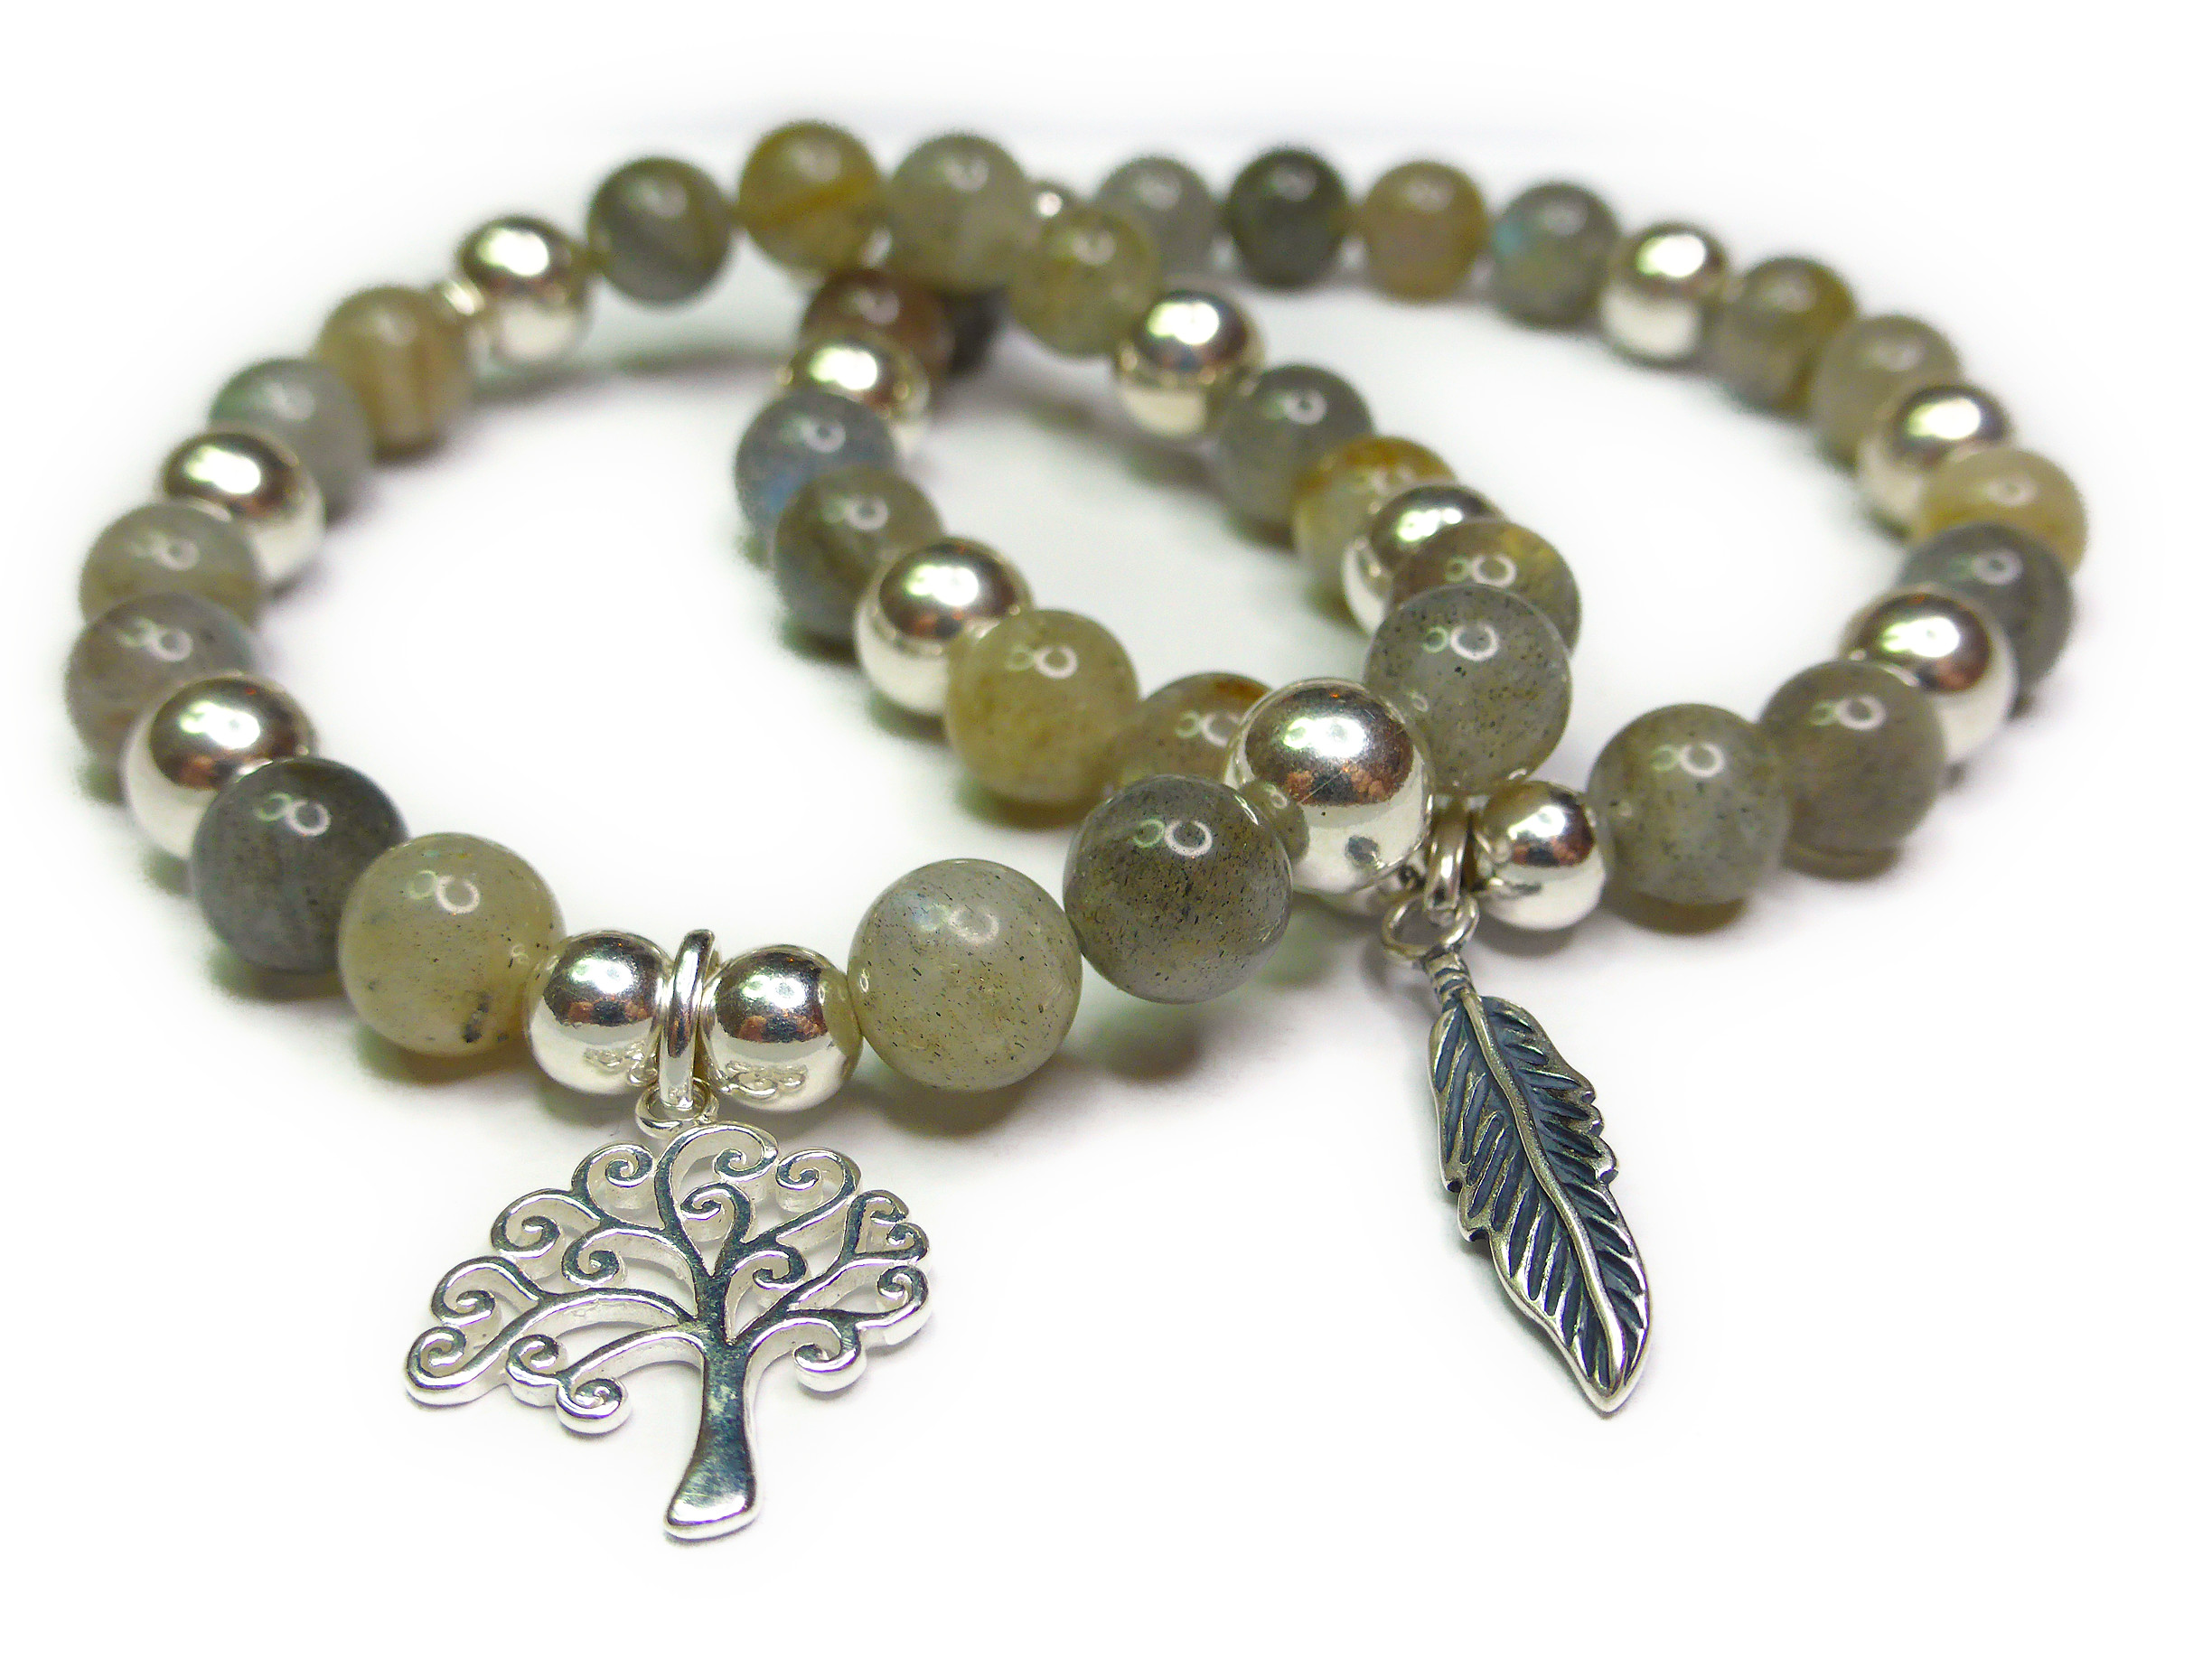 Labradorite and Sterling Silver Bracelets from the Moonstorm Collection by Jacy & Jools